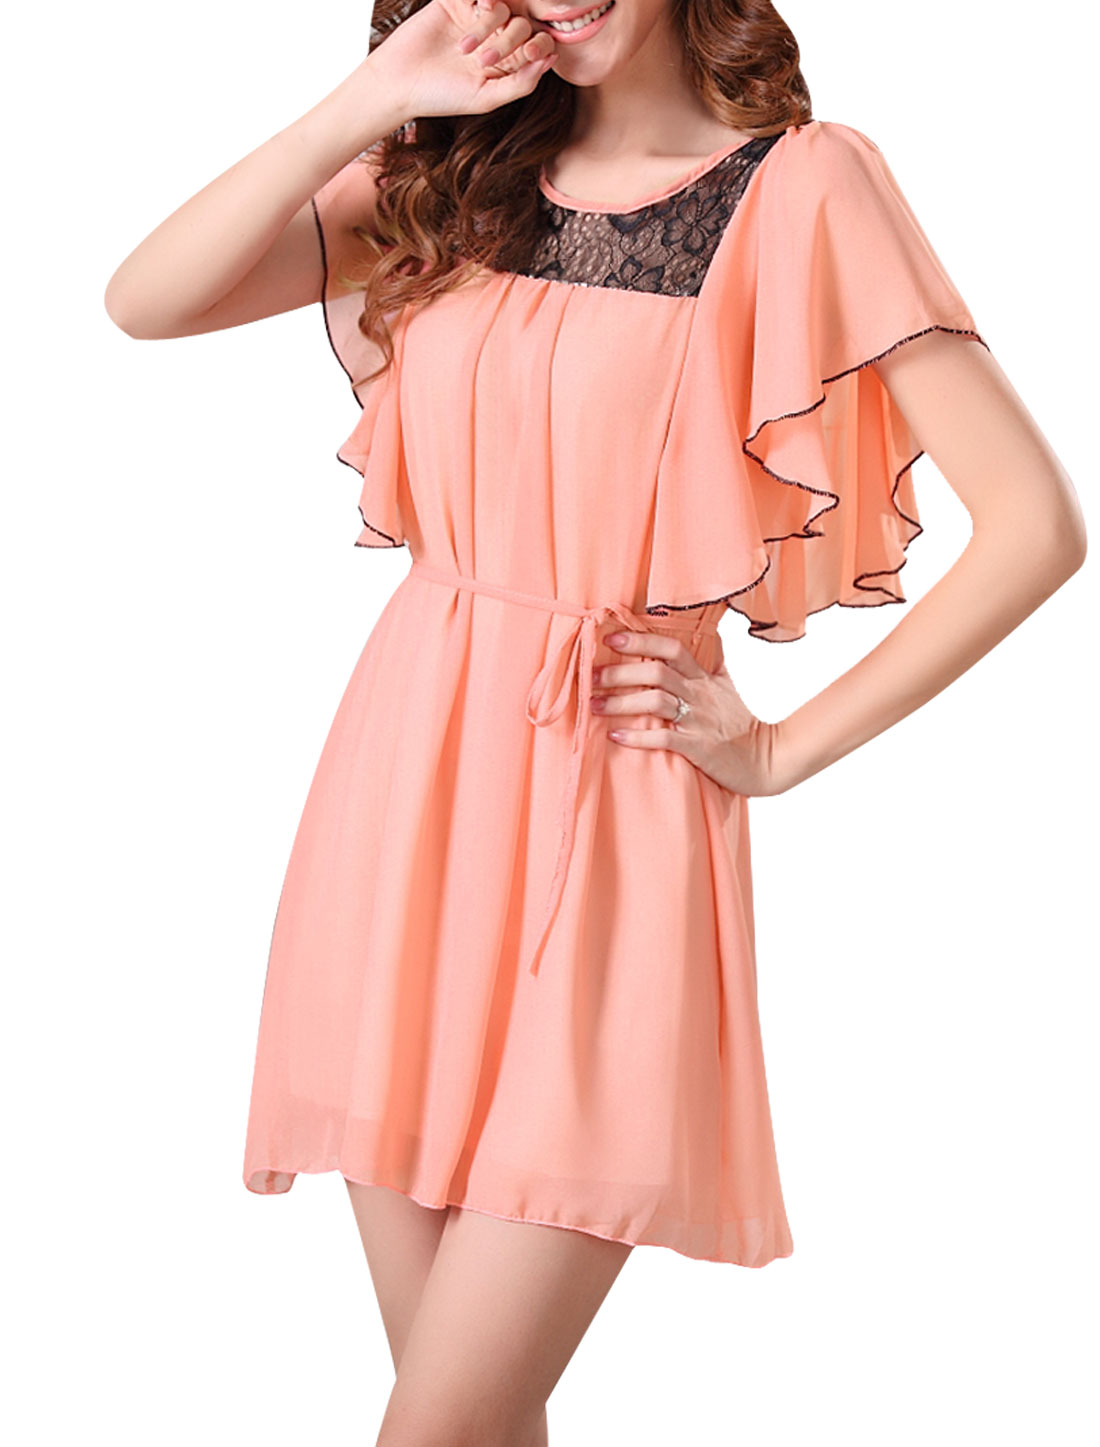 Ladies Chiffon Sleeveless Belted Flouncing Elegant Dress Pink S